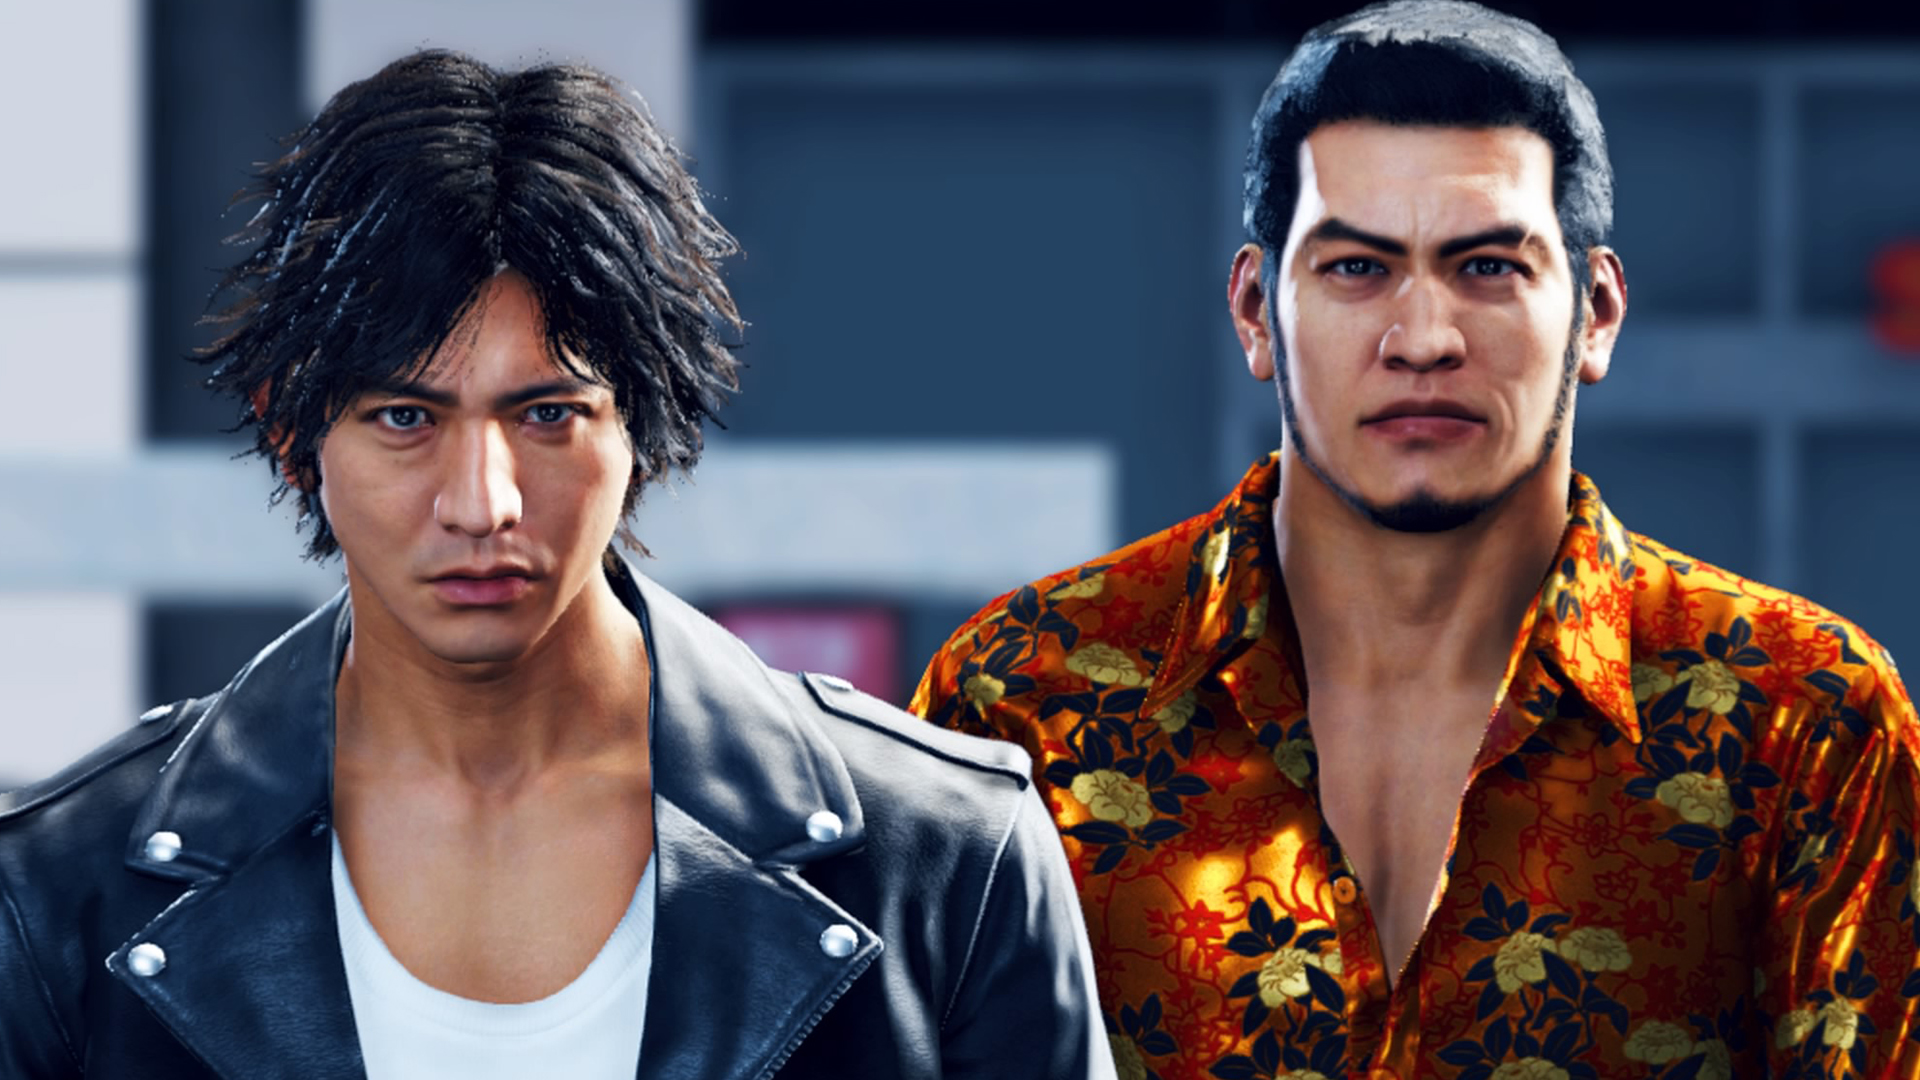 Judgment - Characters